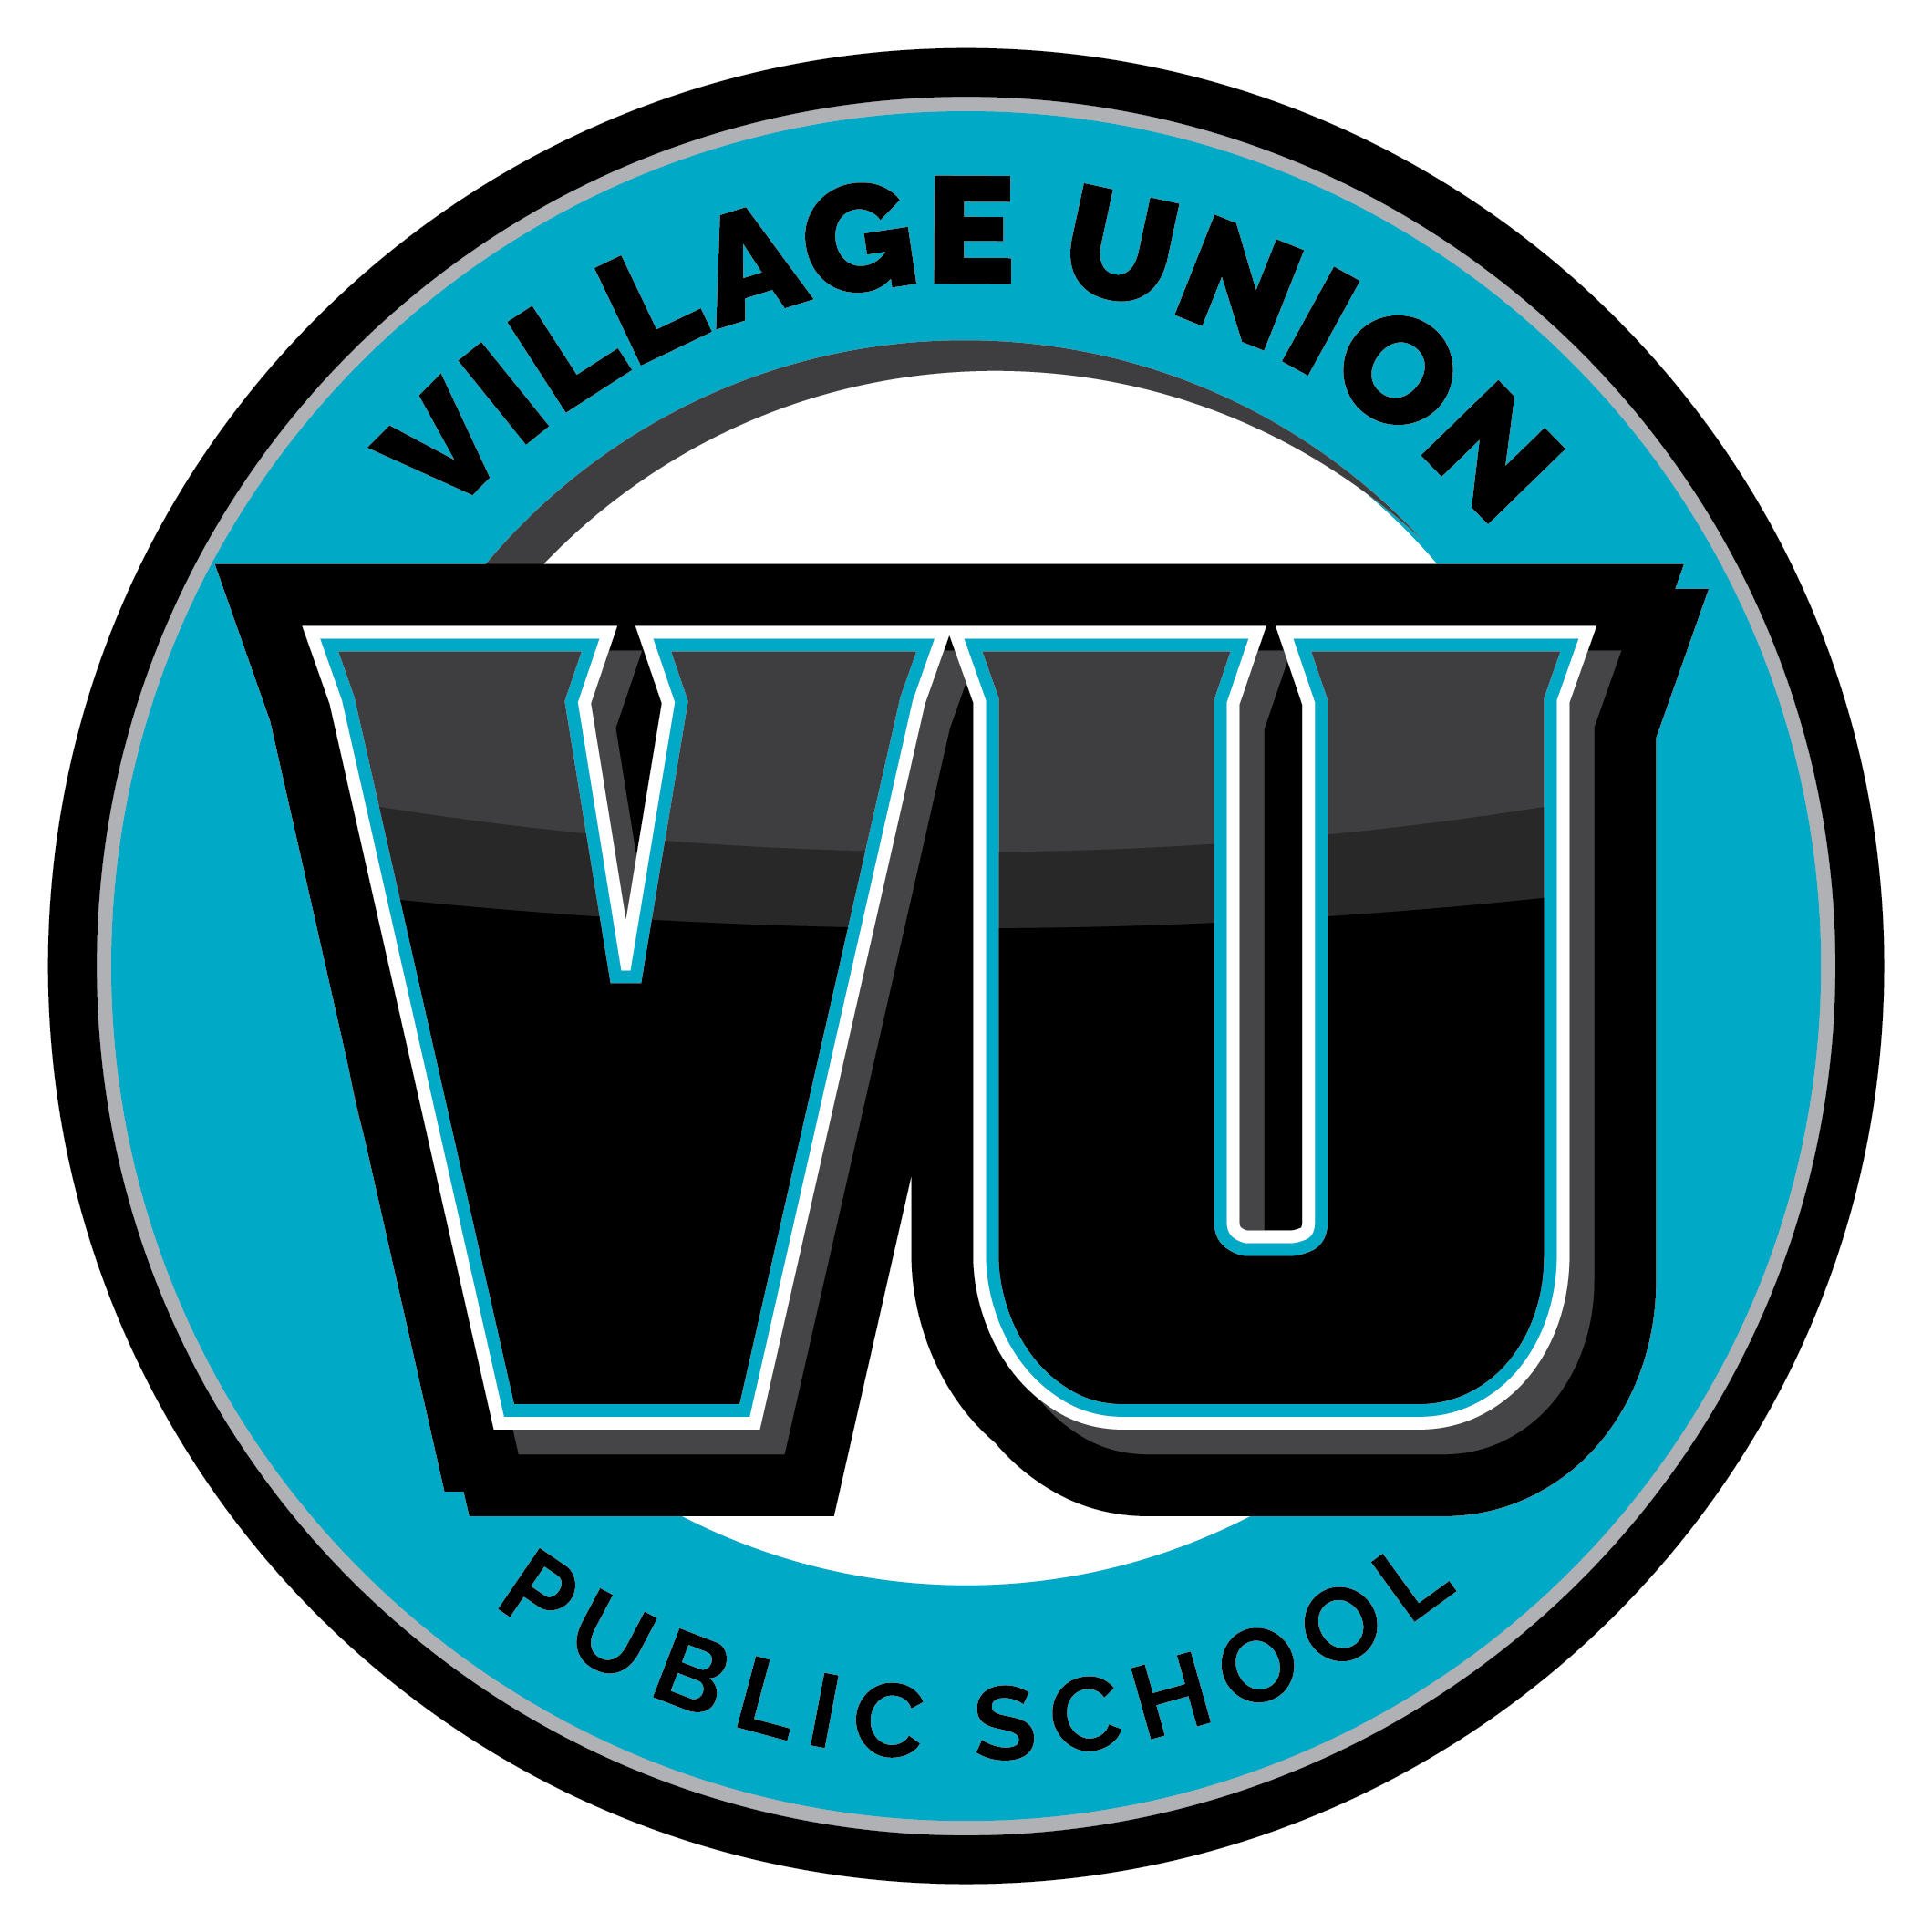 Village Union Public School logo